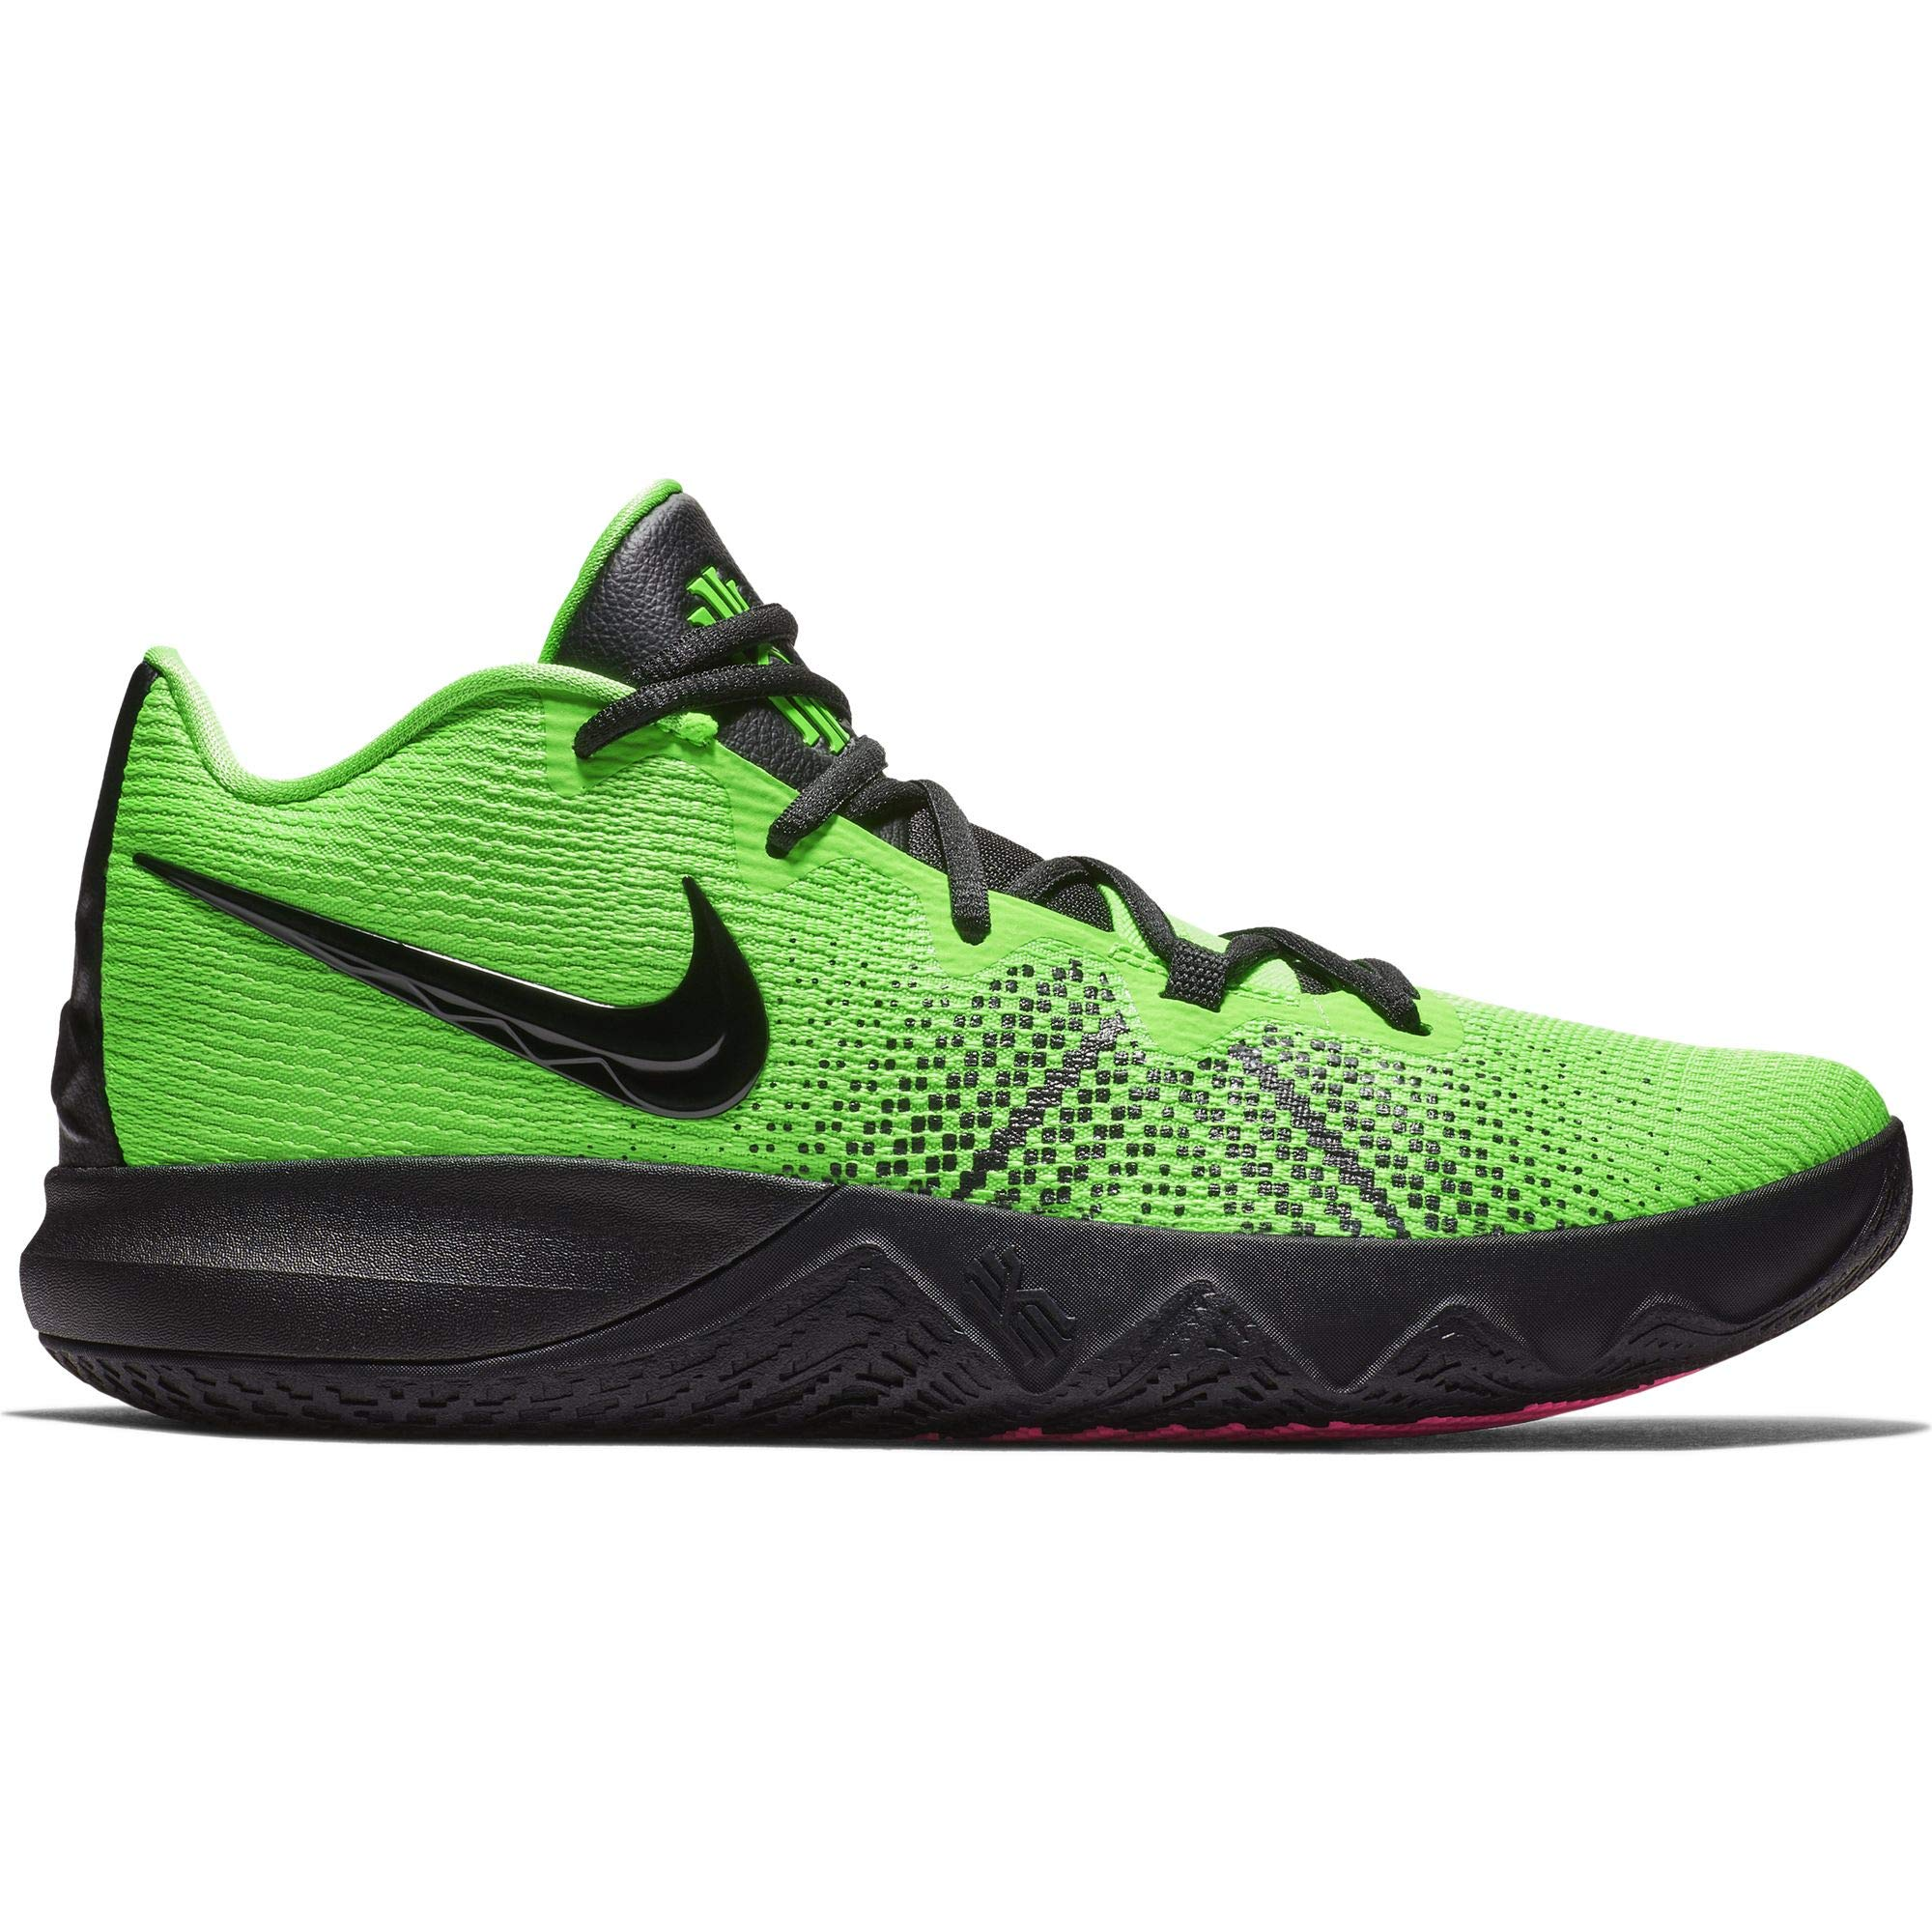 Nike Mens Kyrie Flytrap Basketball High Top Sneakers (10 M US, Rage Green/Black/Hyper Pink)